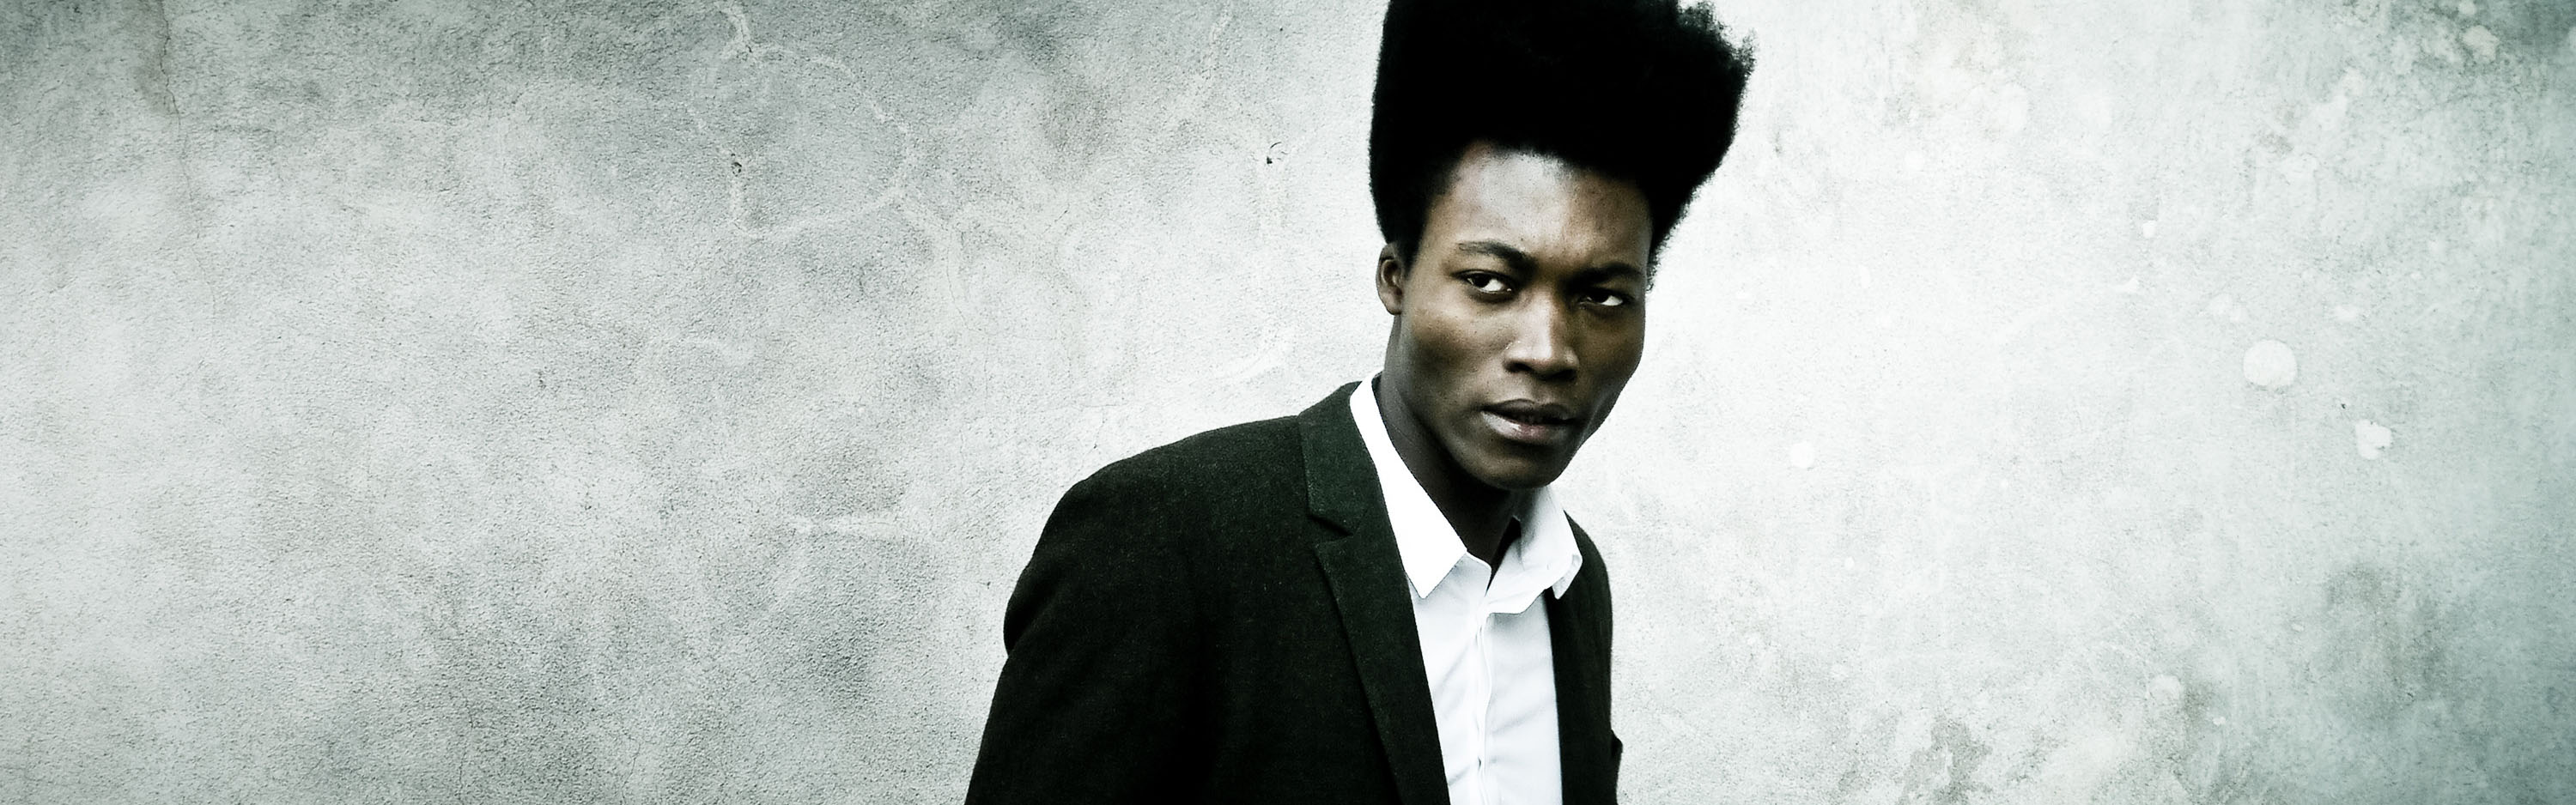 benjamin-clementine-c-micky-clement